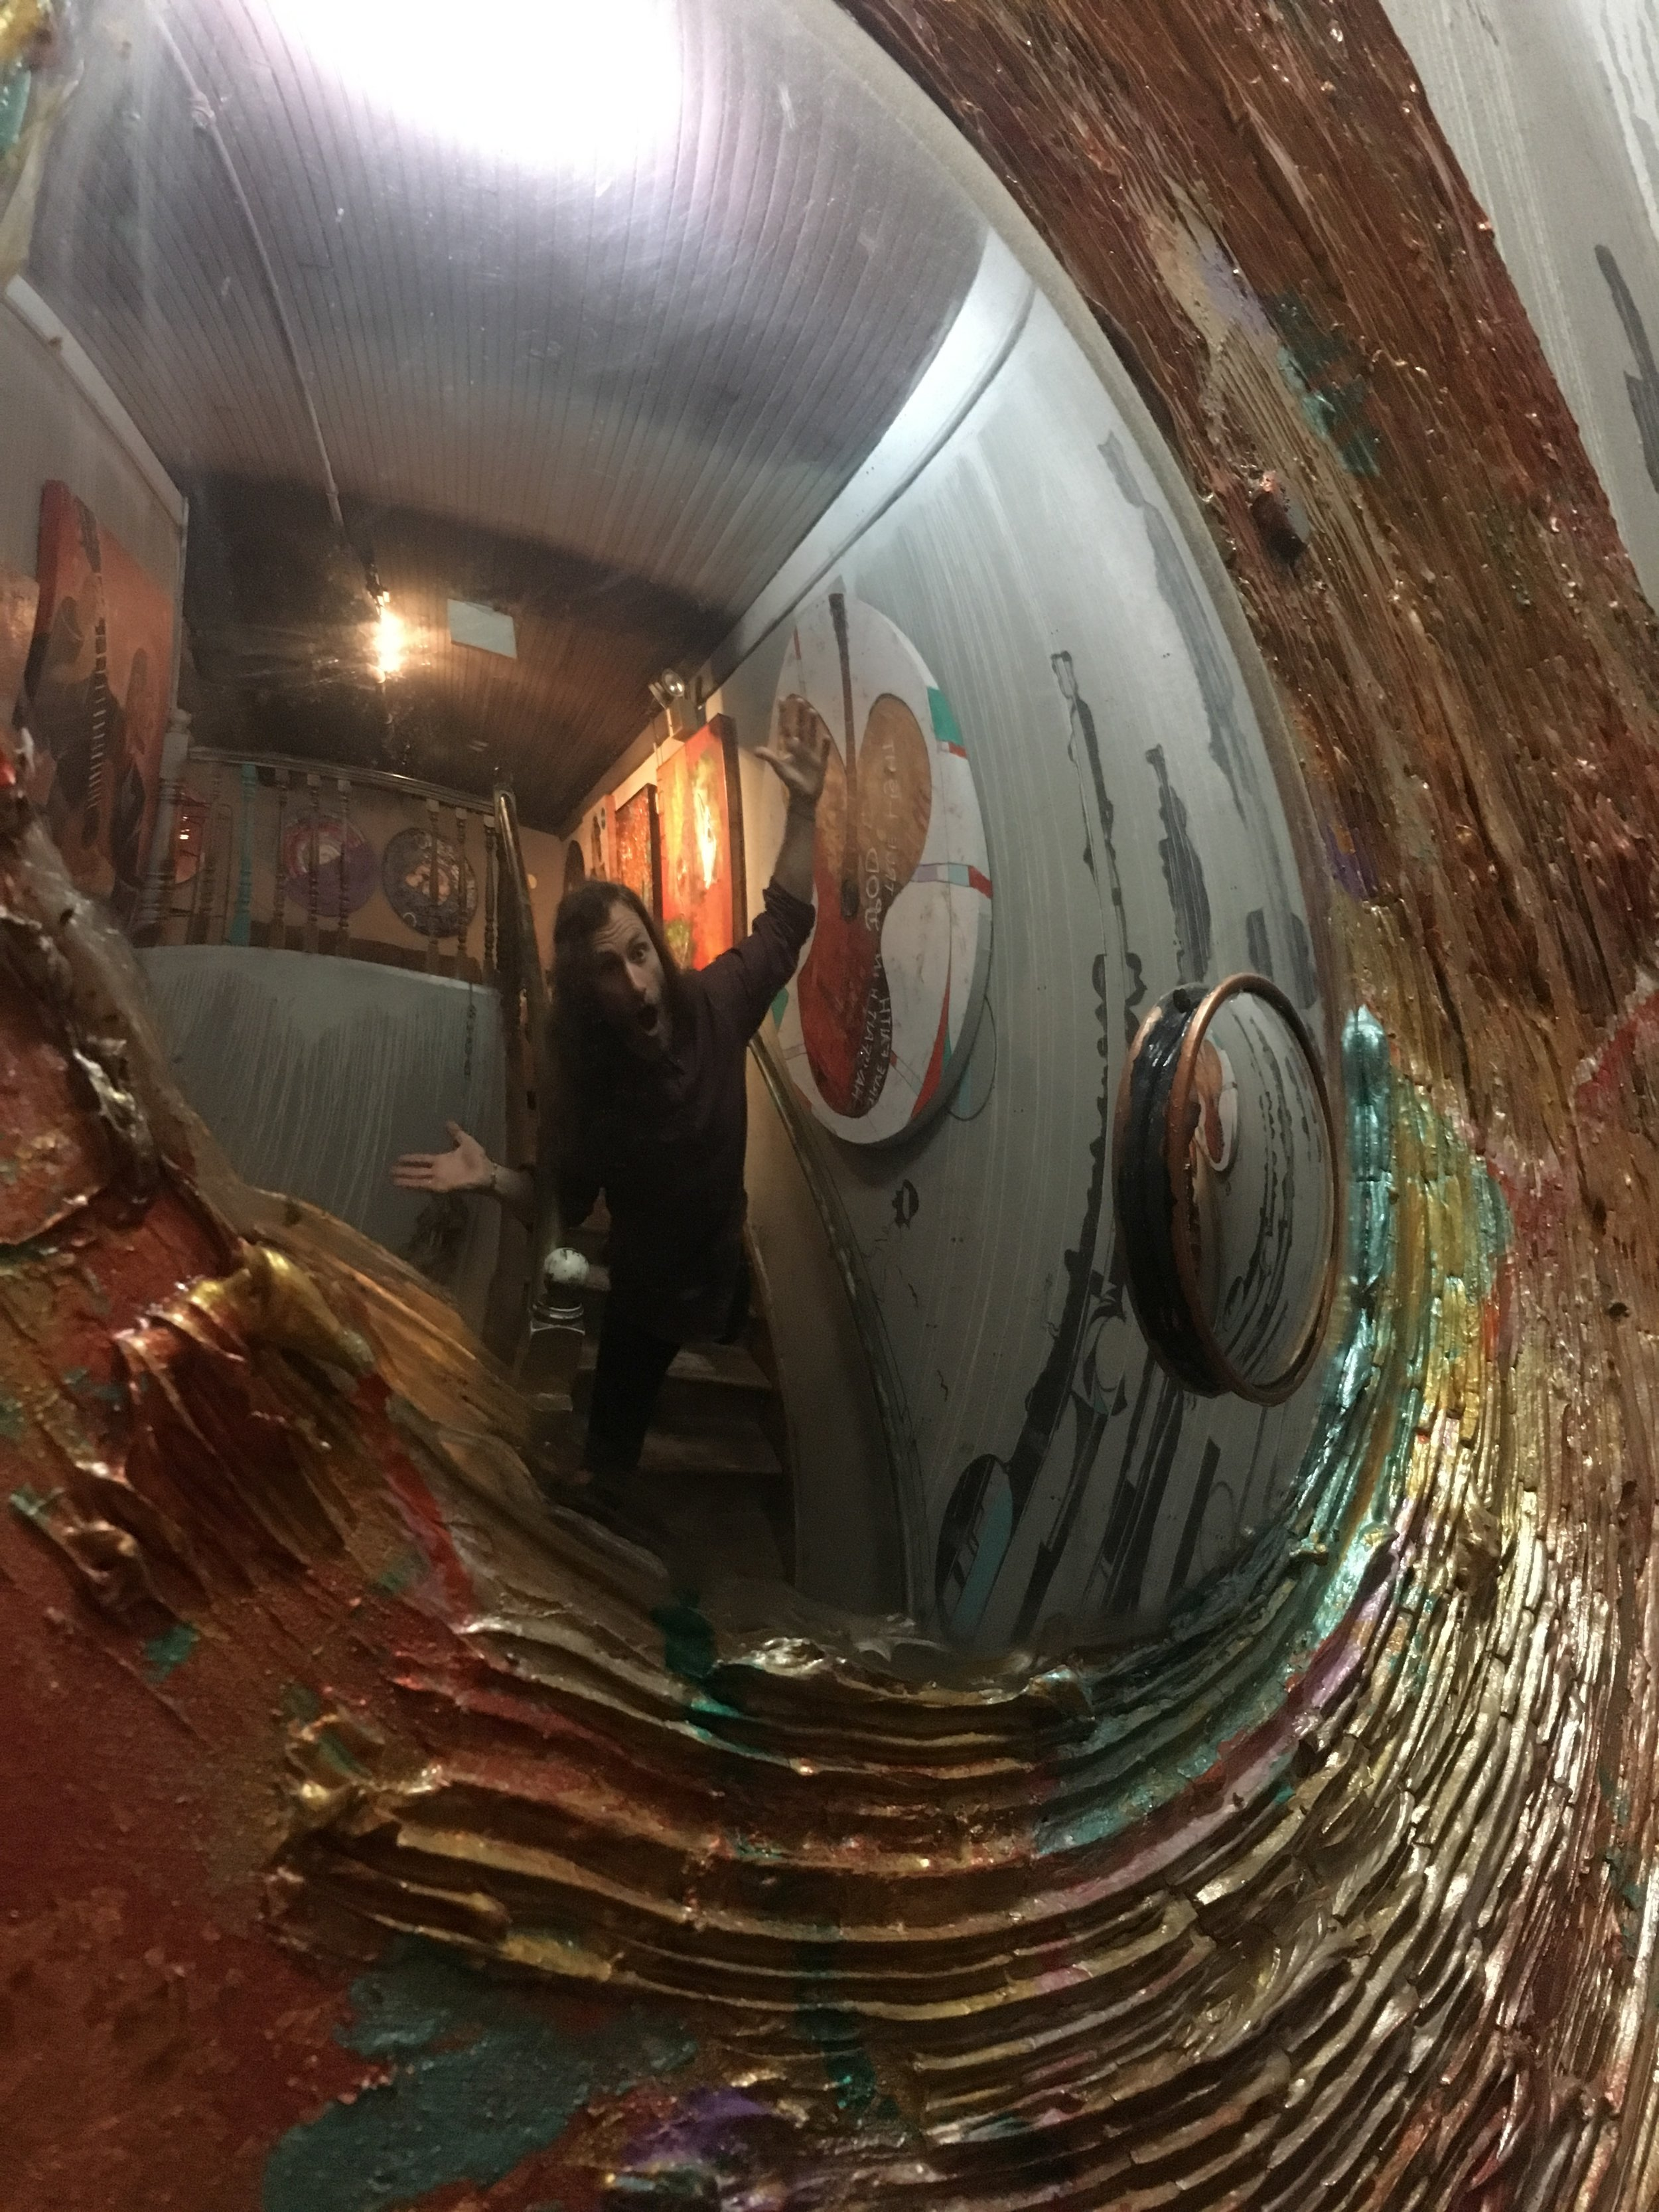 Matt Miller throws up a goofy pose in the mirror of one of his many paintings Friday, Apr. 21, 2017. Mr. Miller completed this specific piece around 3 years ago. It now hangs on display at  Path Outfitters.